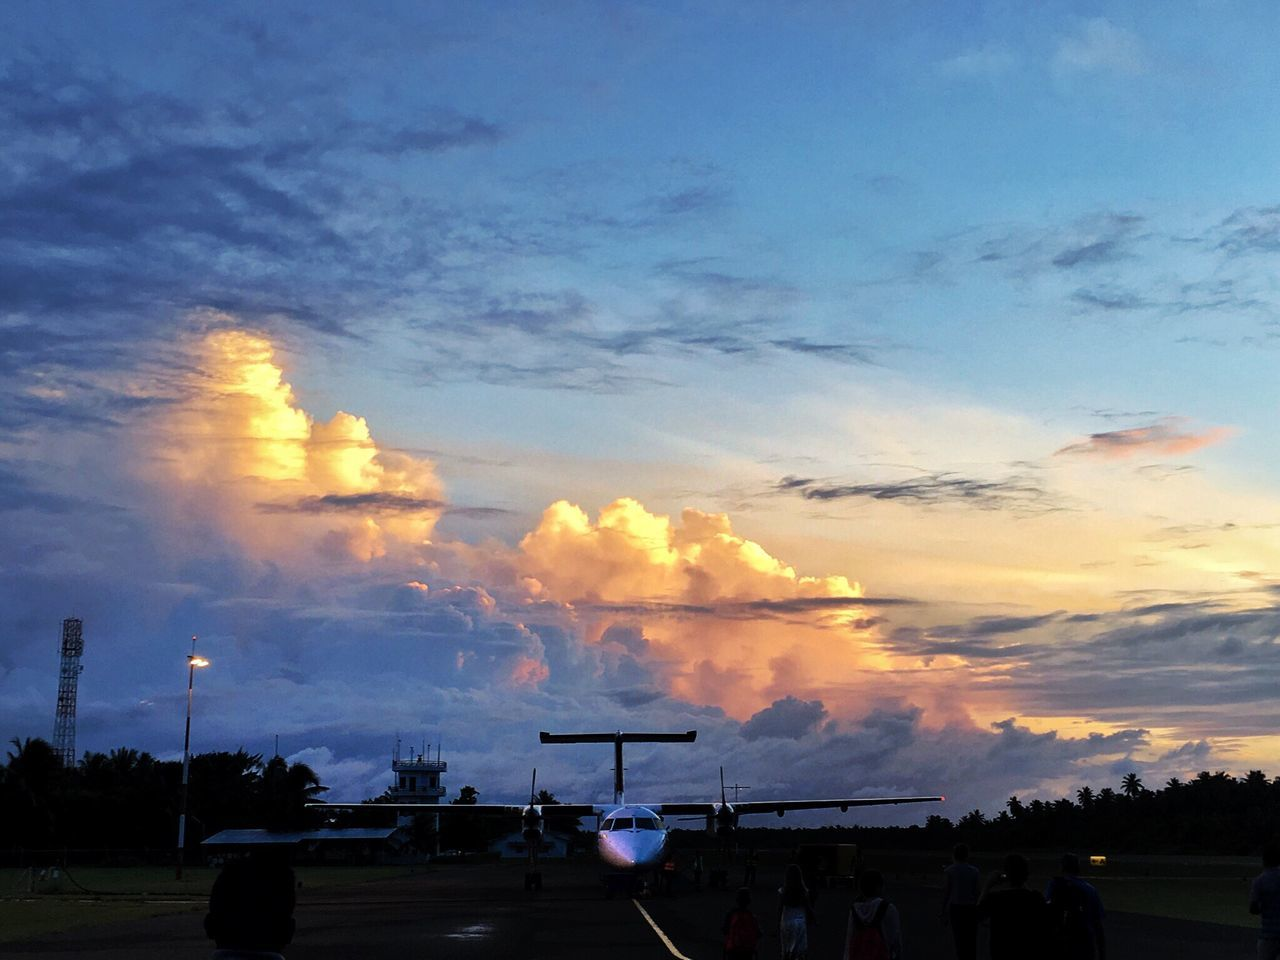 Born to fly! Maldives AirPlane ✈ Airplane Flight ✈ Flight Sunrise Sunrise_Collection Clouds And Sky Cloudscape Clouds Mode Of Transport Flying Morning Morning Sky Morning Light Indian Ocean